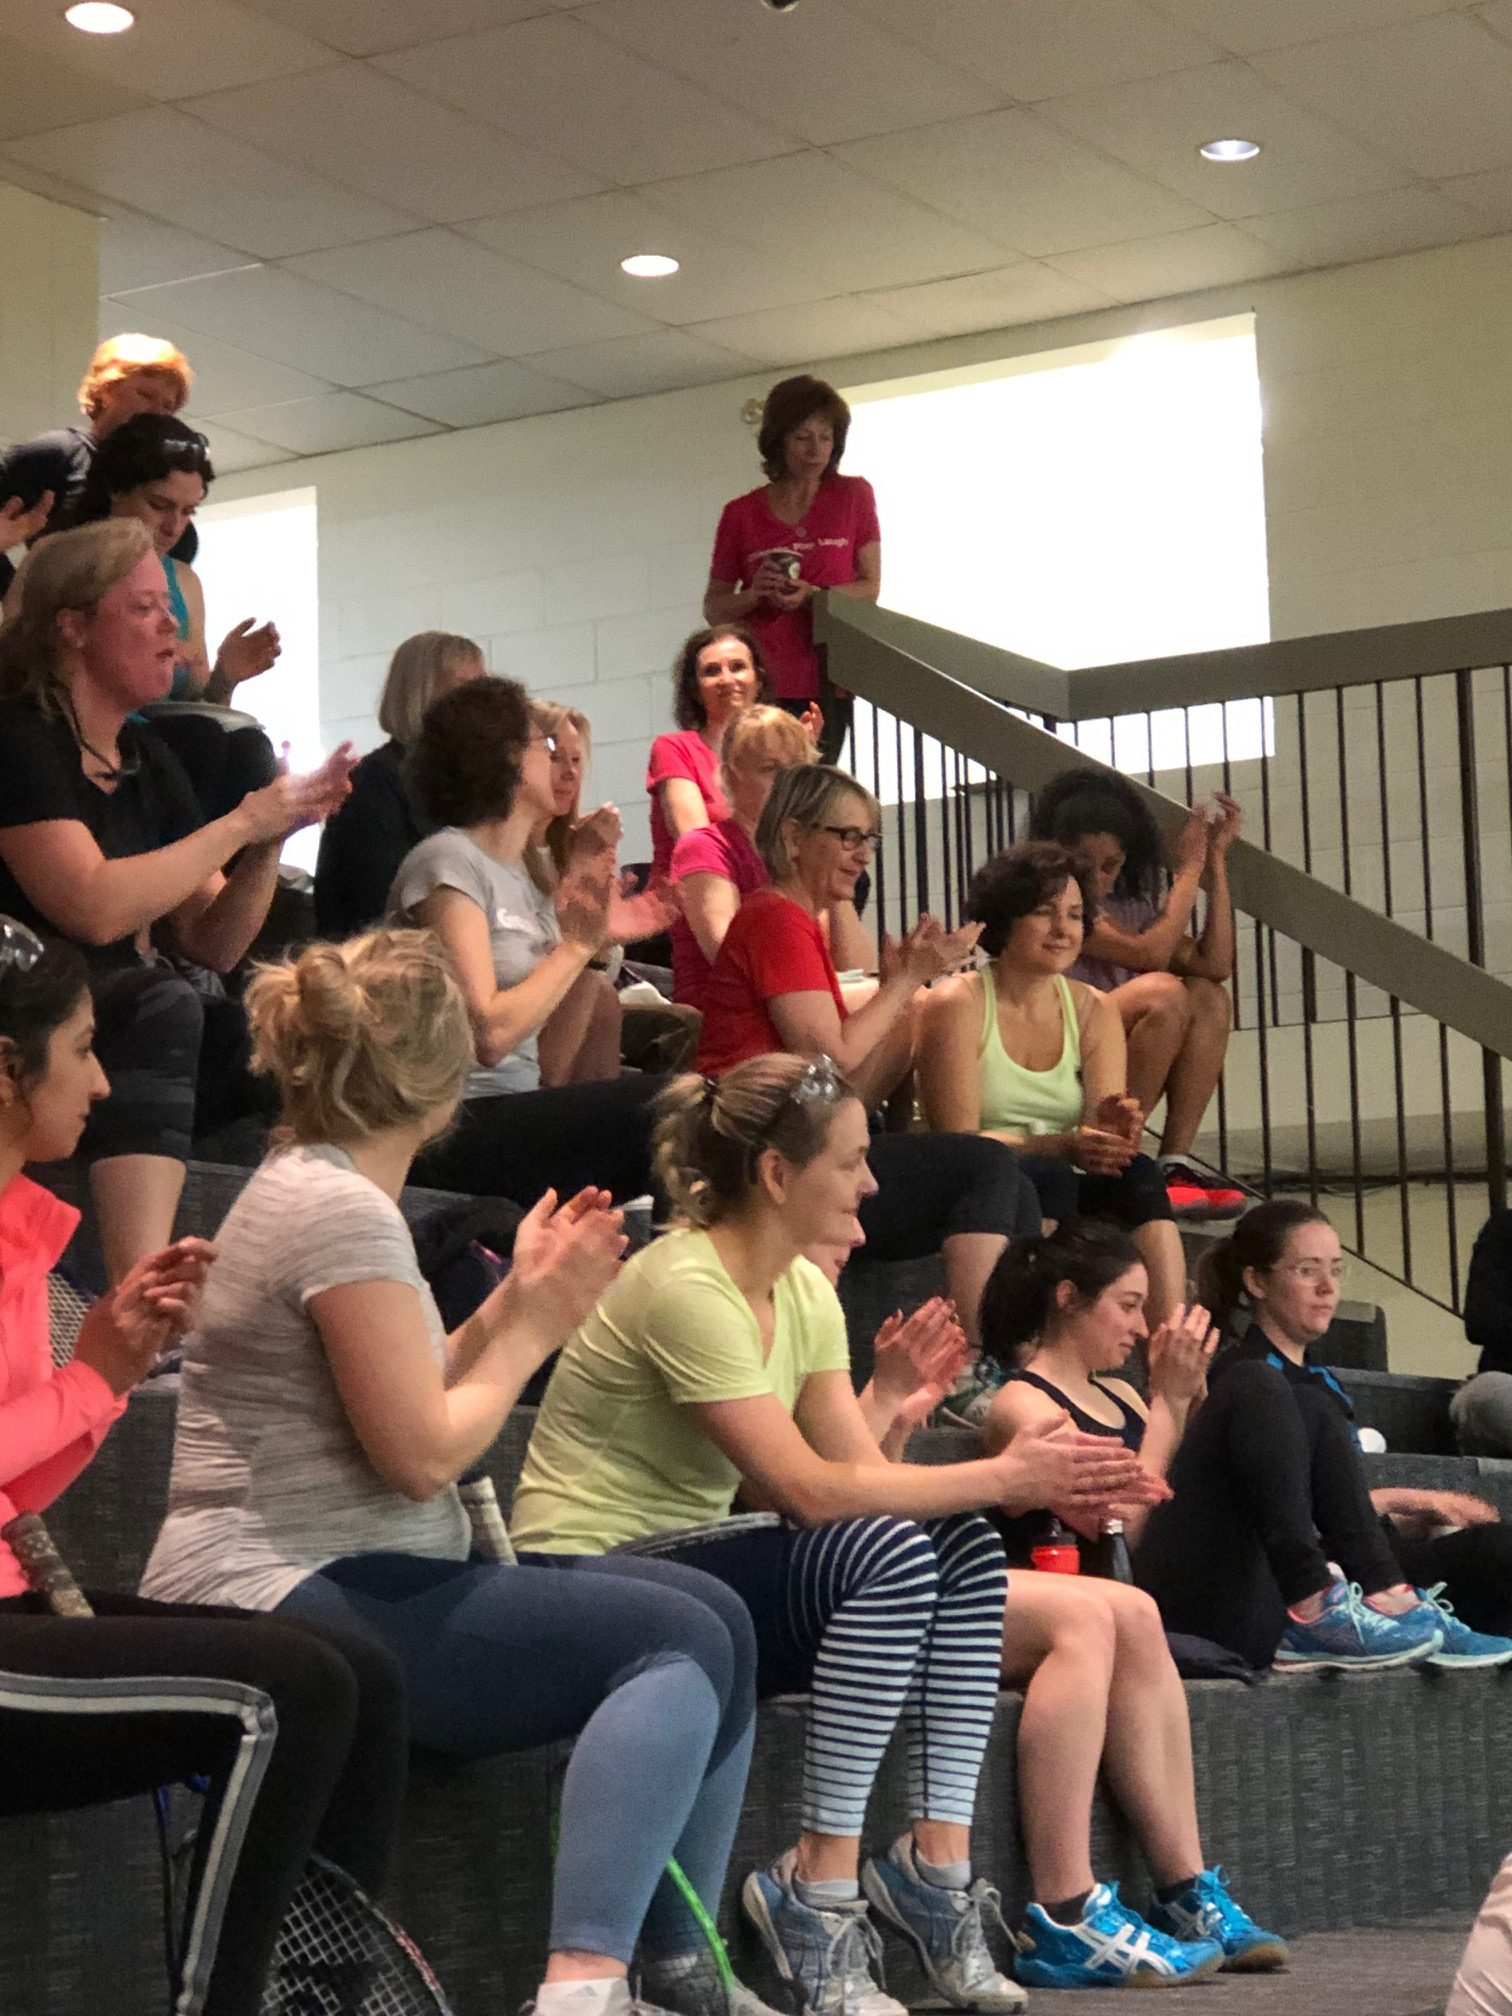 Our women's squash community rocks!